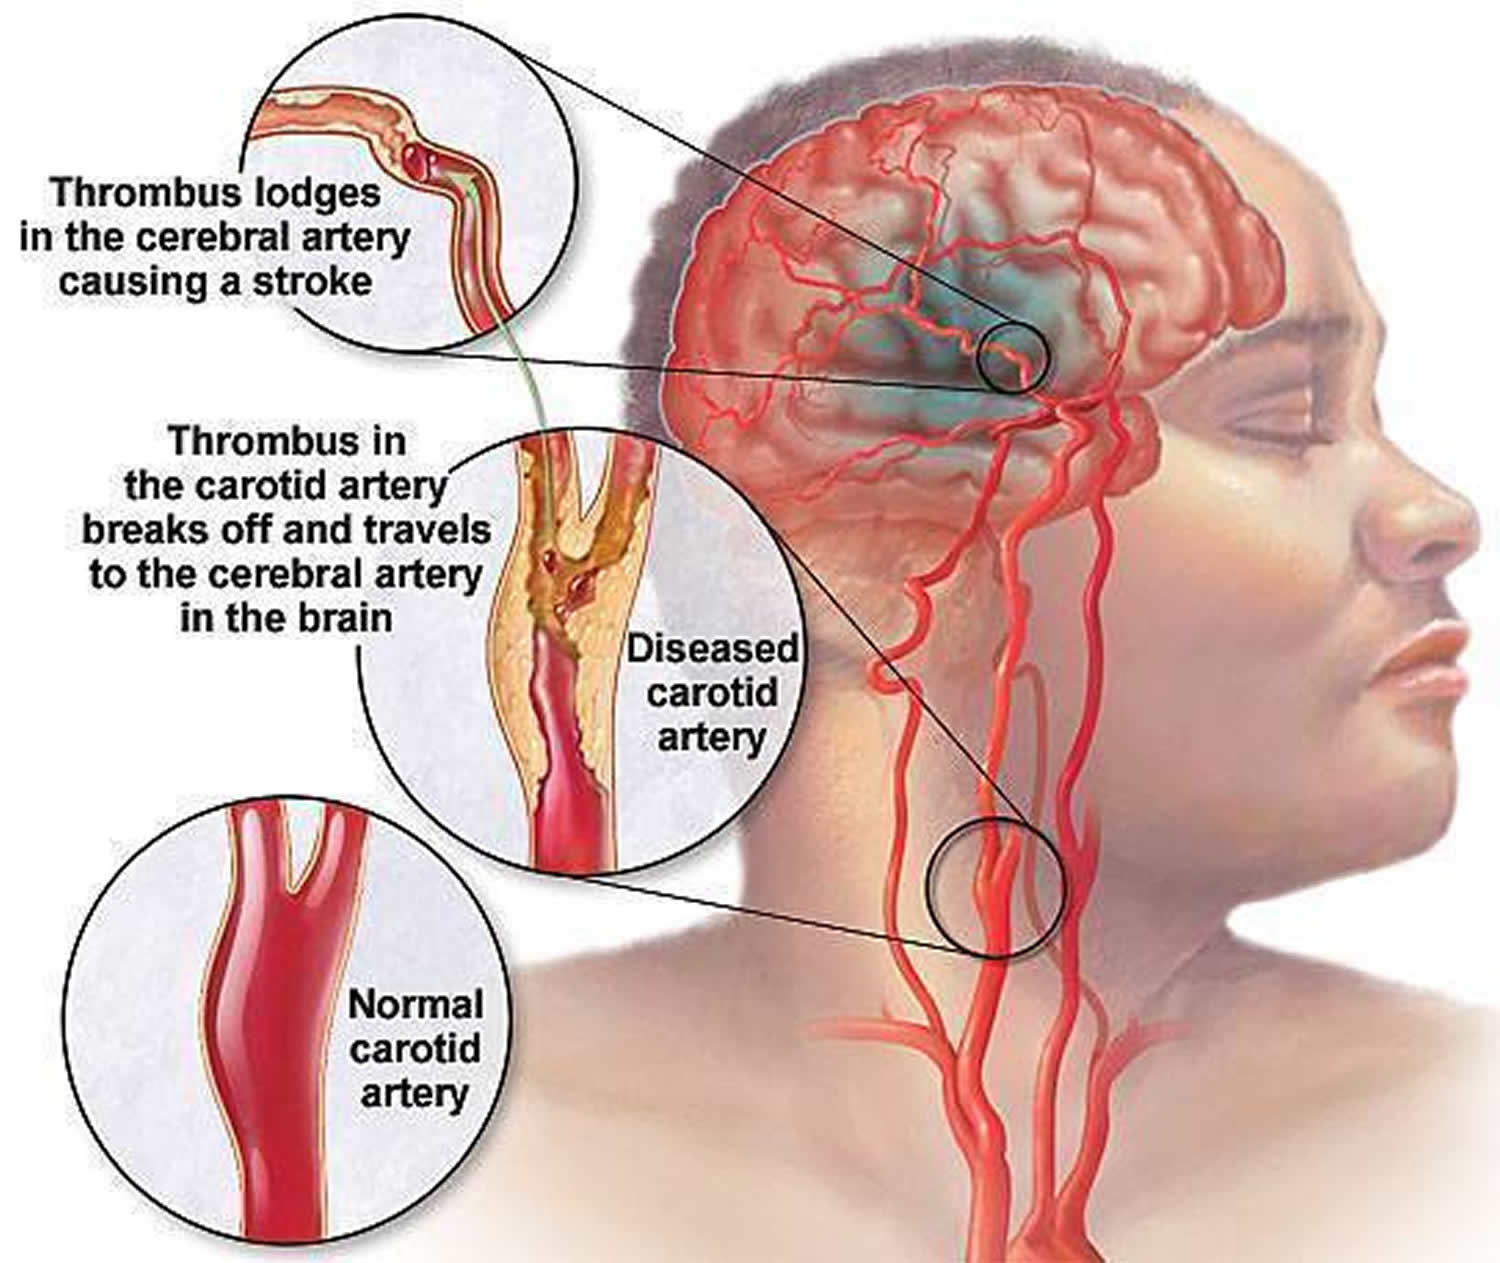 cartiods diseas 1 day ago  carotid artery disease is a disease in which a waxy substance called plaque builds up inside the carotid arteries you have two common carotid arteries, one on each side of your neck.